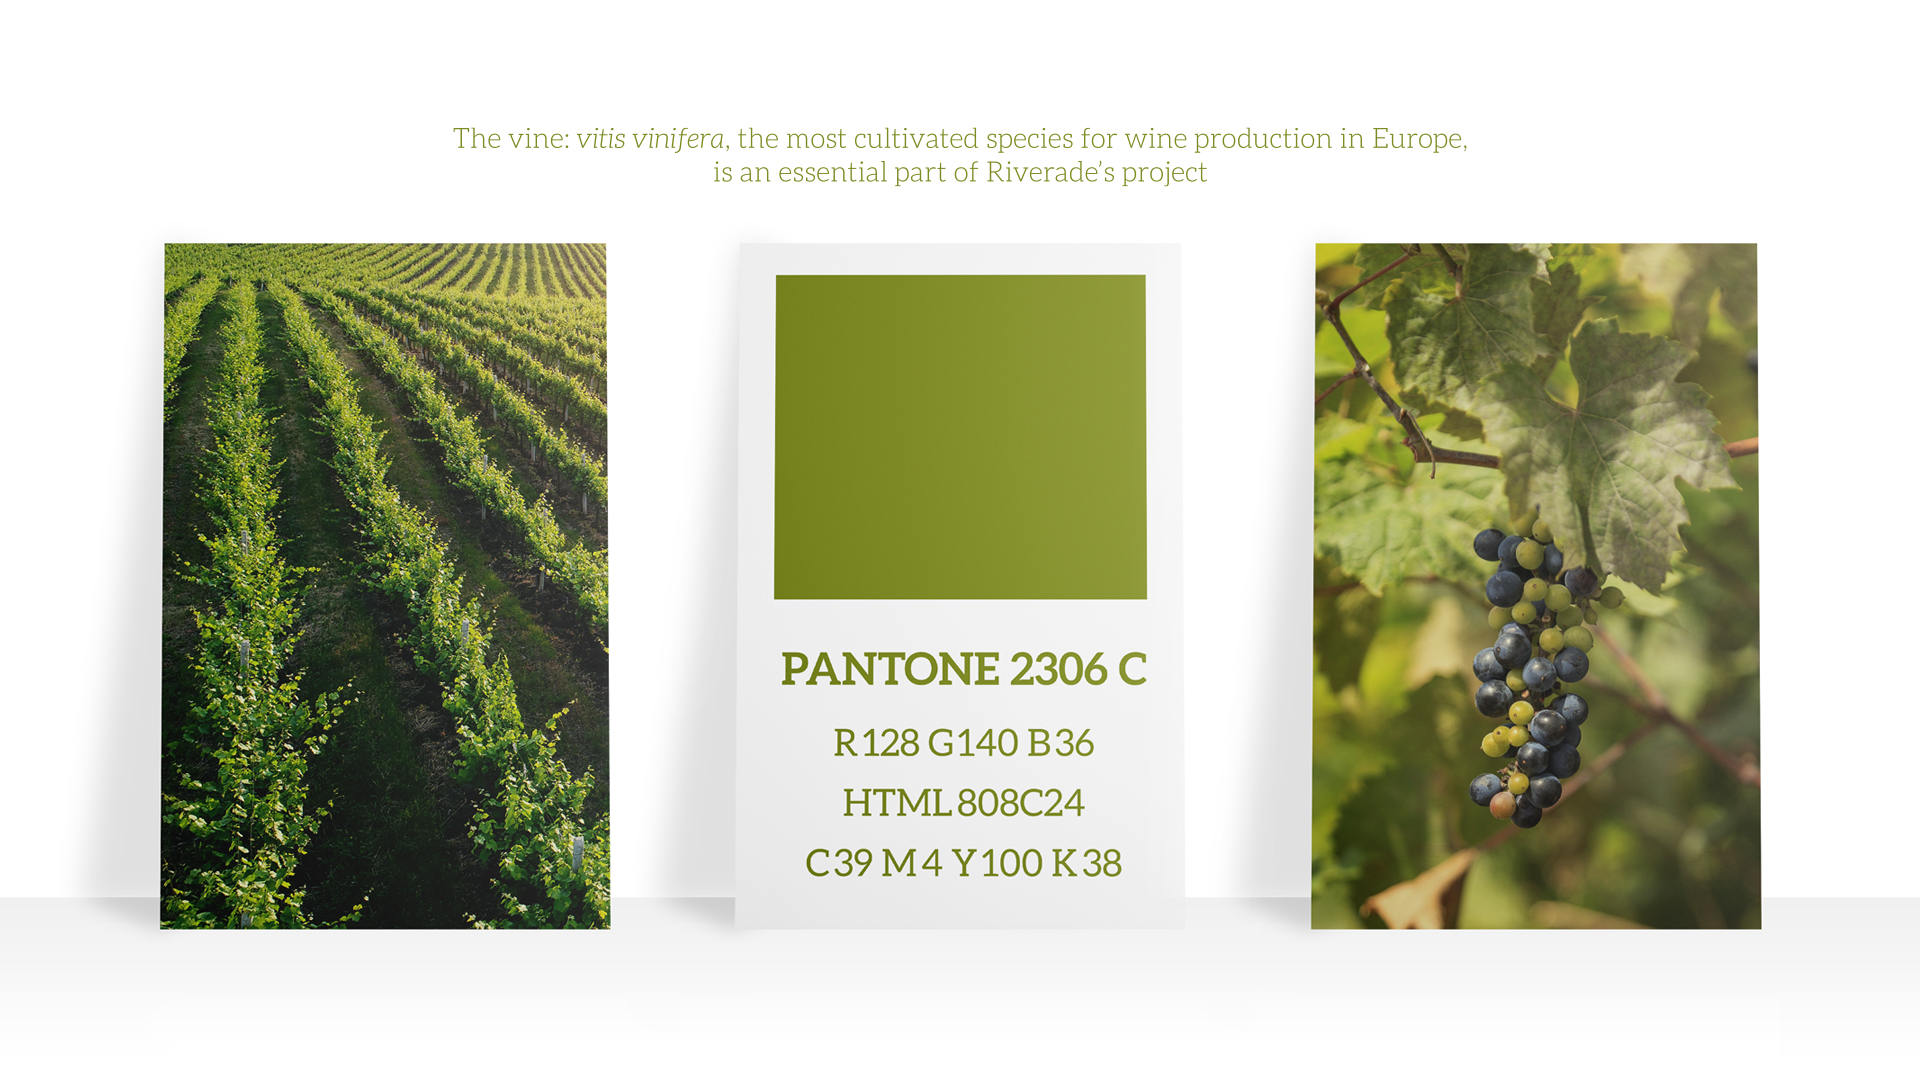 Color palette for Brand Identity based on the Vine, an essential parte of Riverade's Hotel & Winery brand